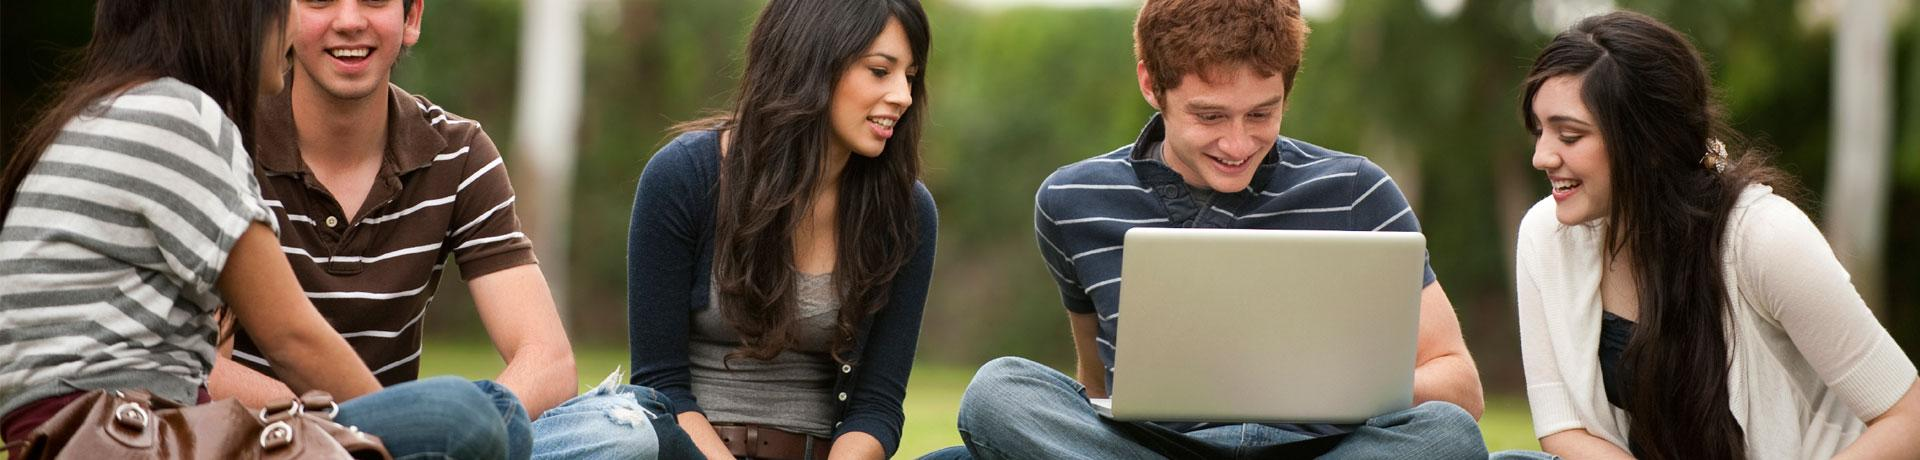 6 Ways College Students Can Protect Against Identity Theft